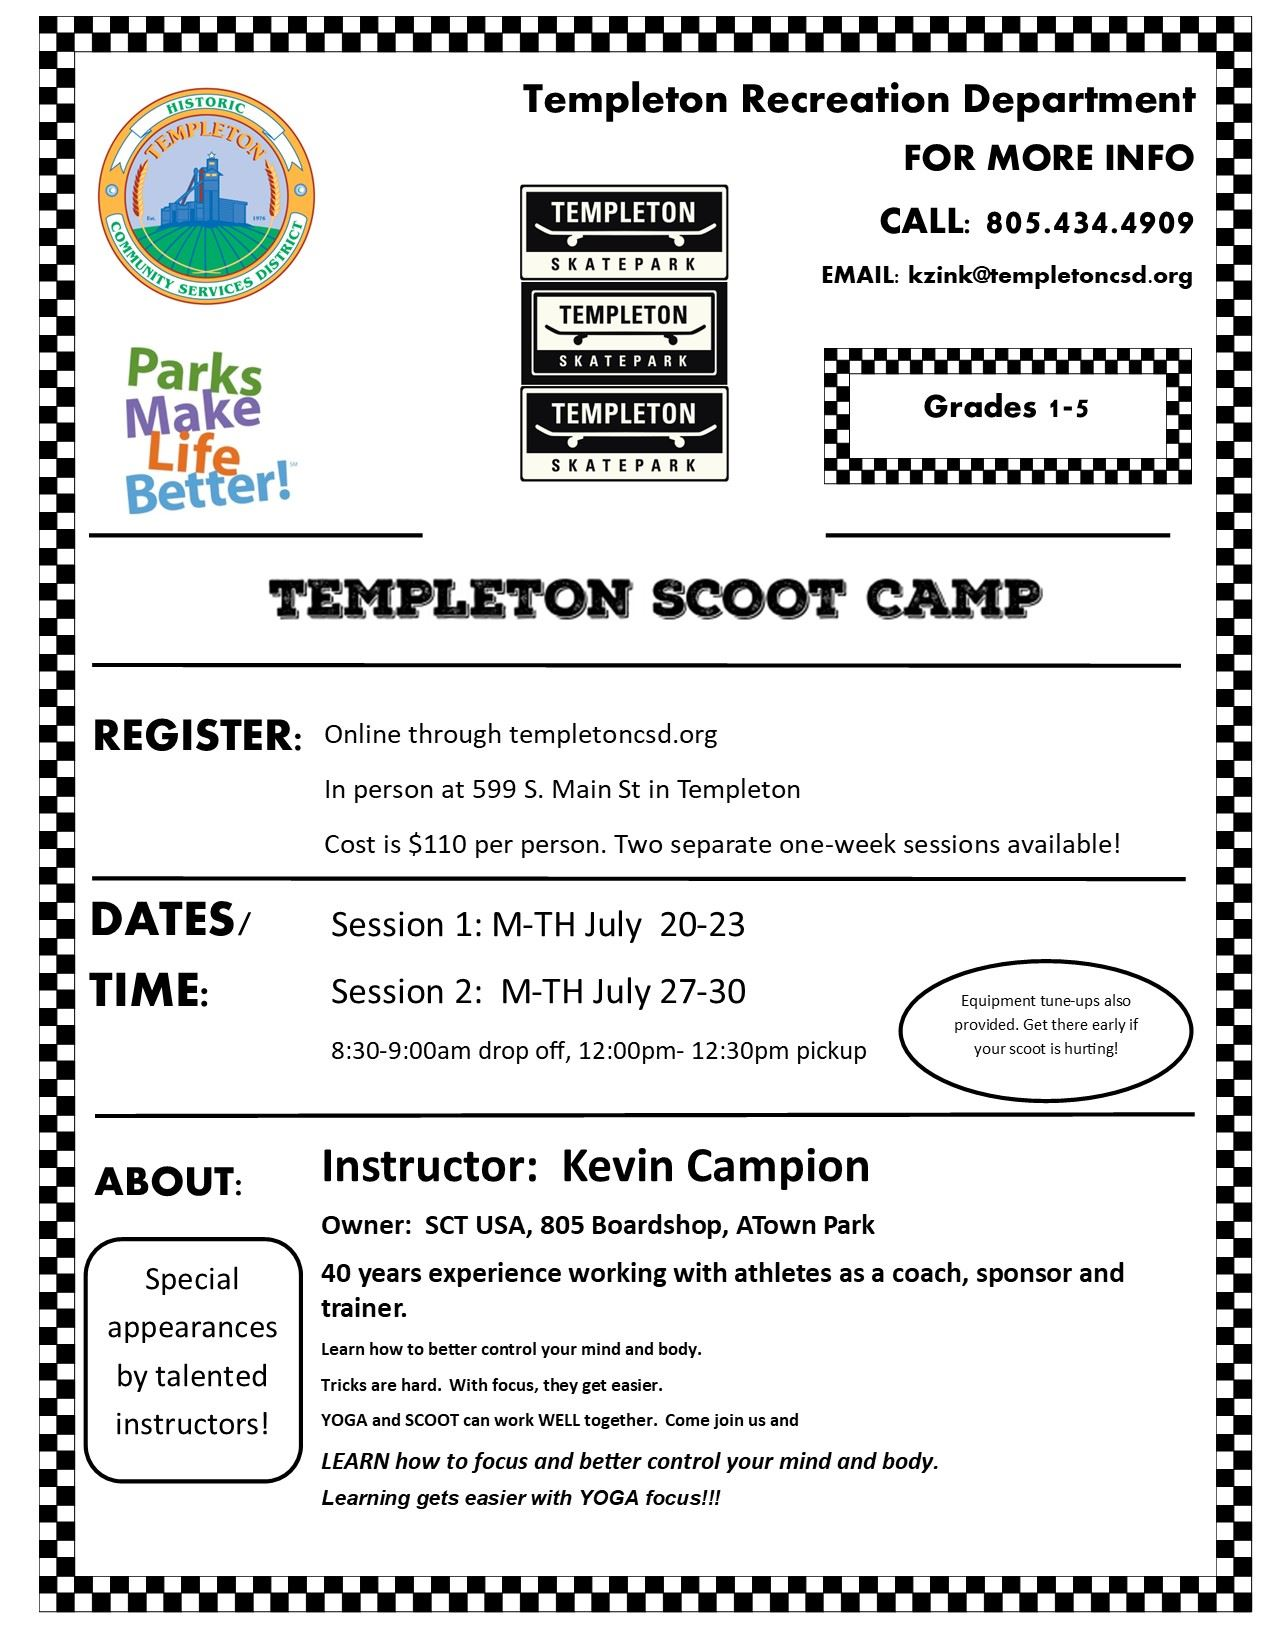 Scoot camp flyer 2020